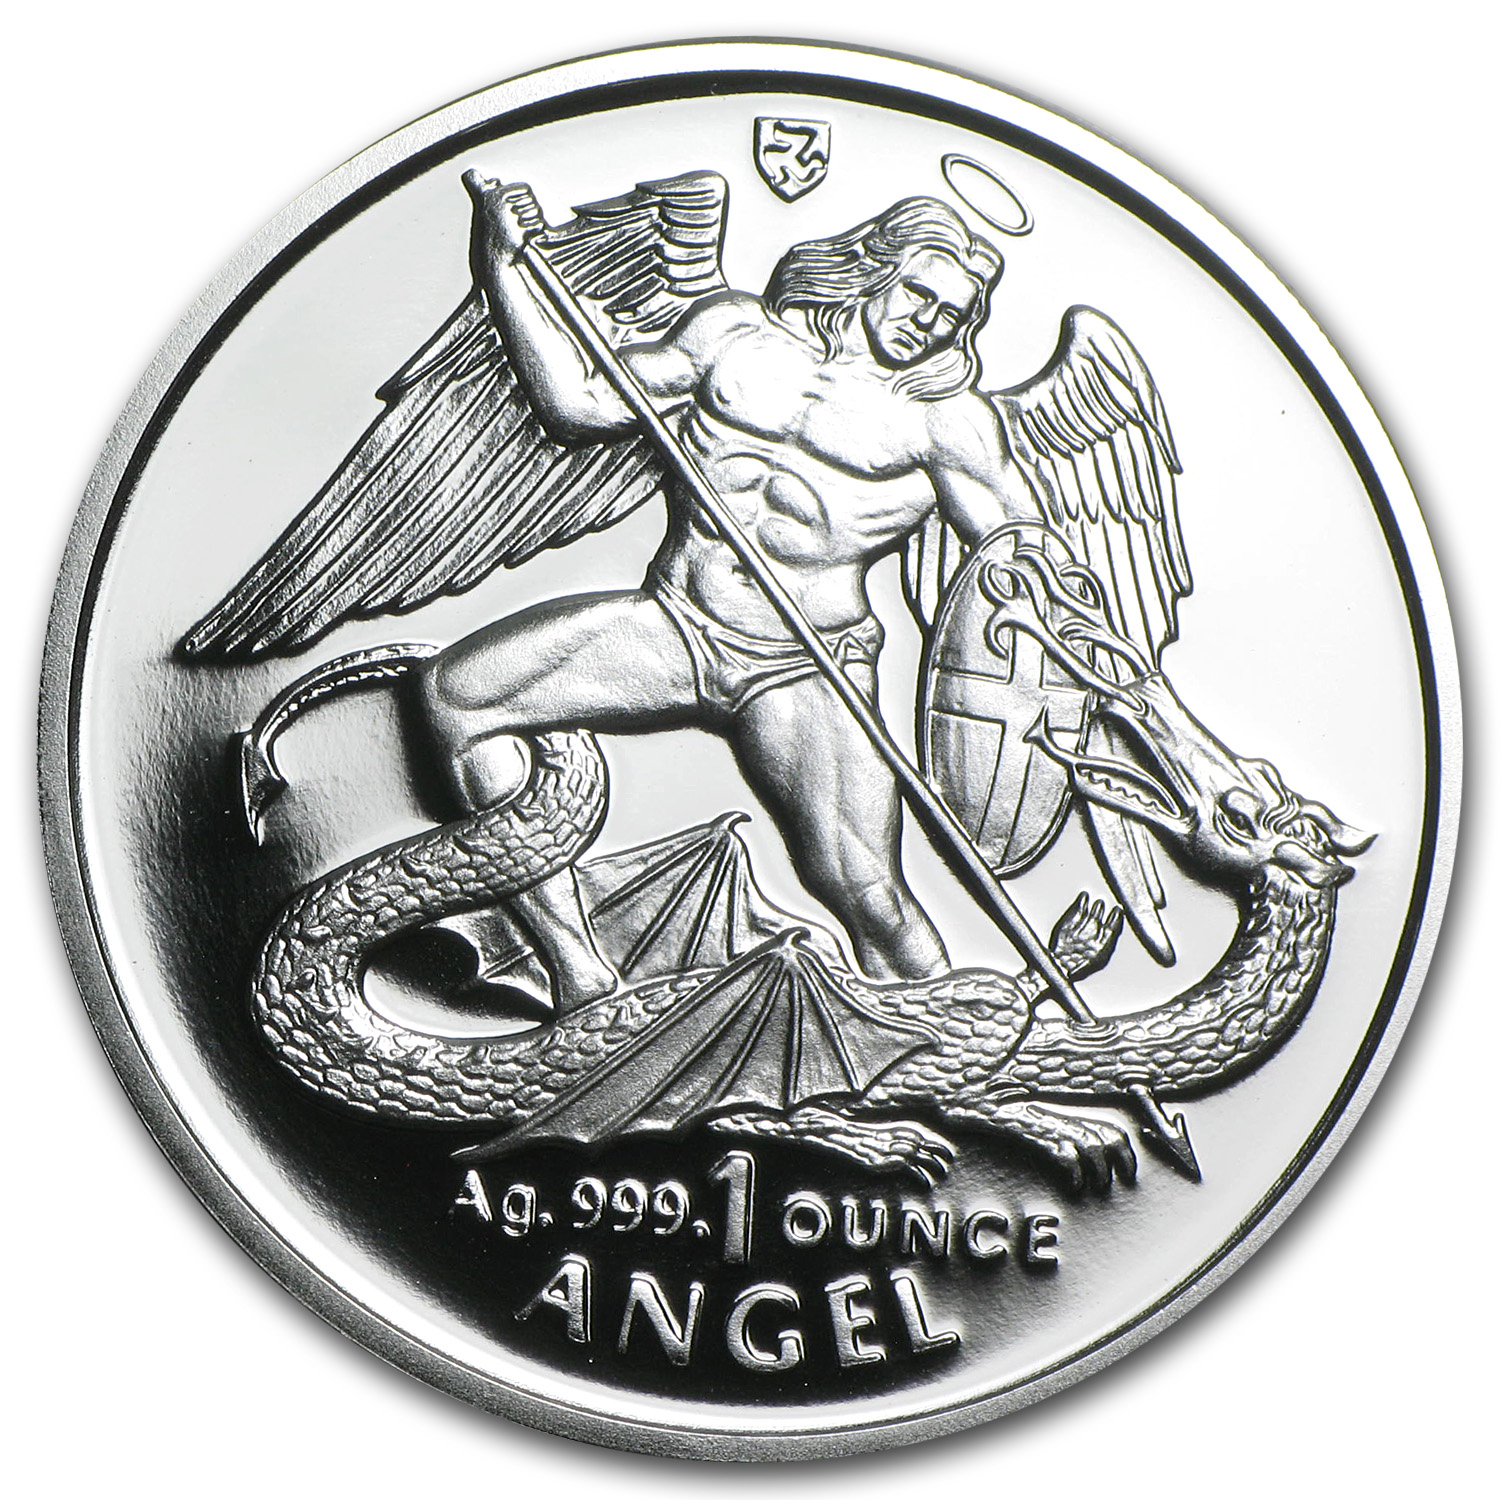 1995 Isle of Man 1 oz Silver Angel Proof